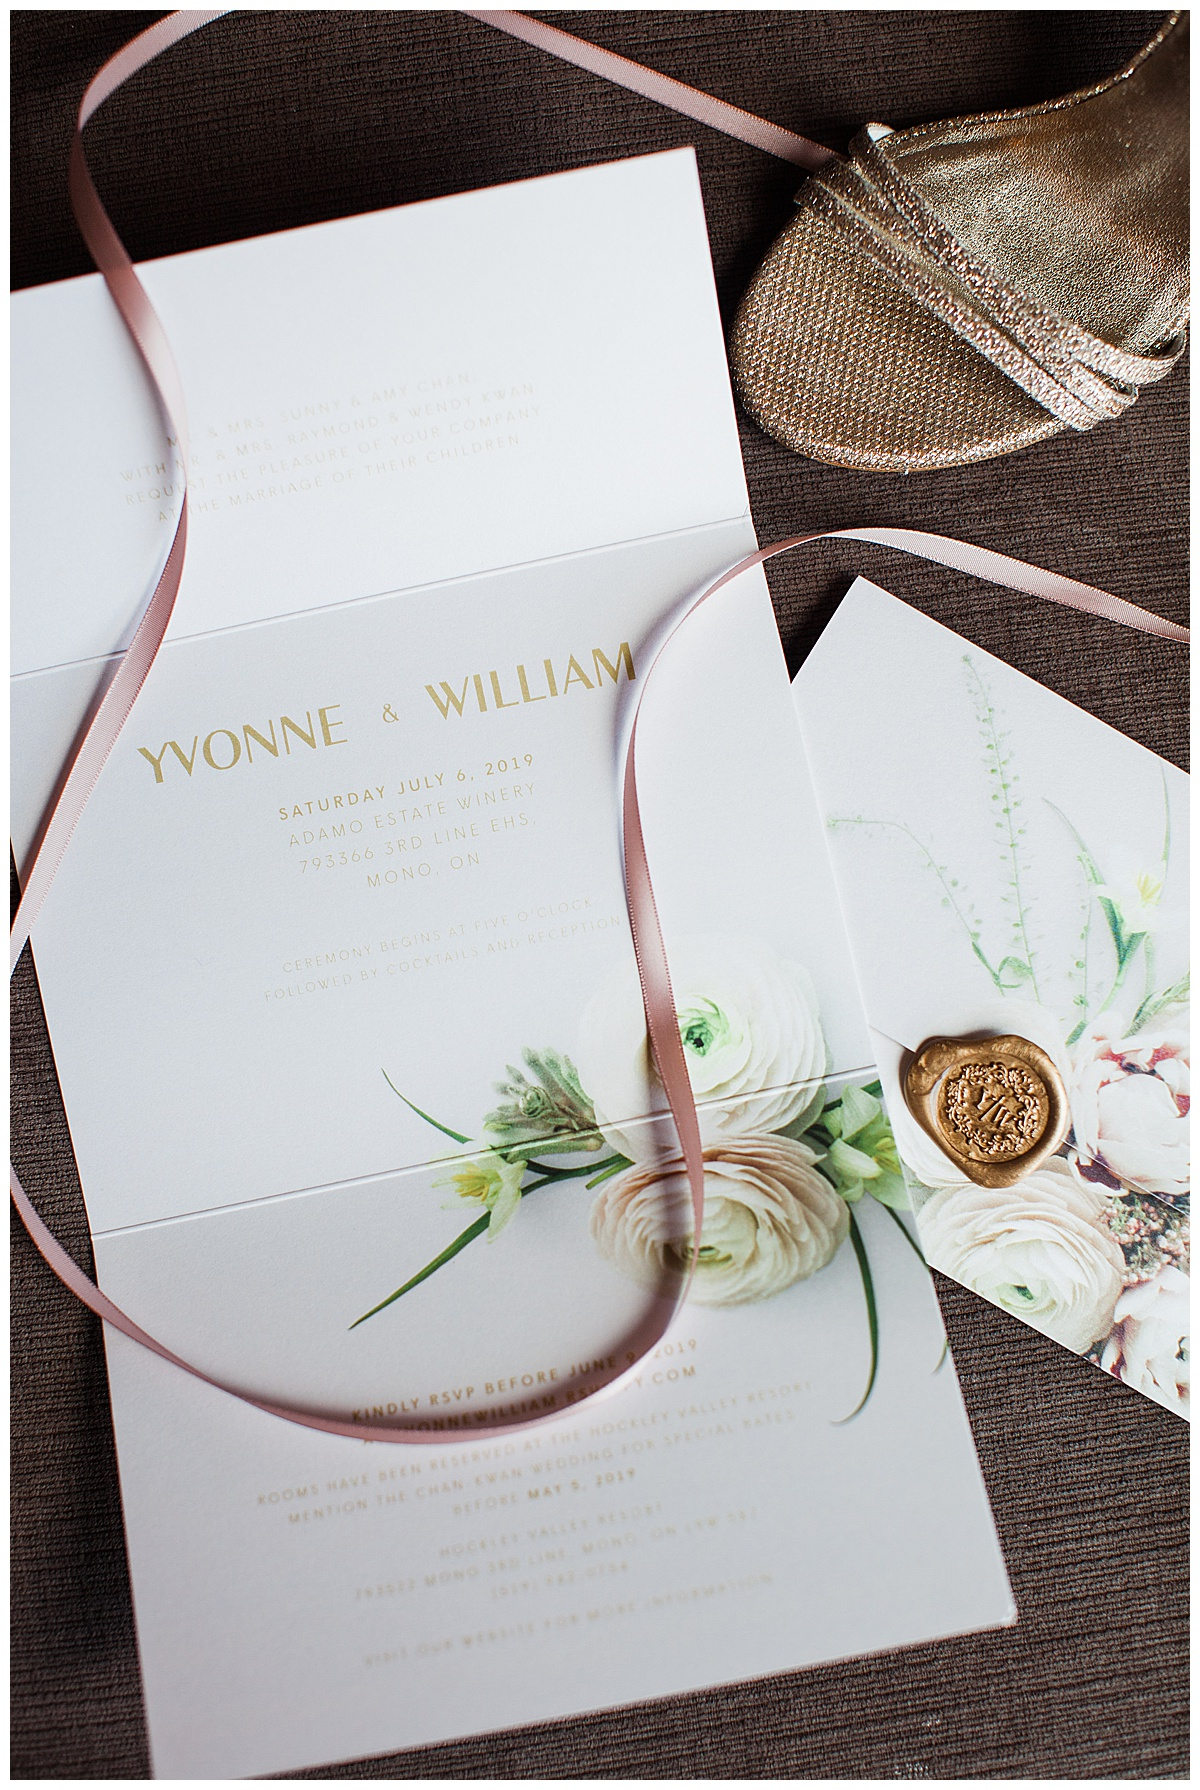 Printed white floral wedding invitations with pink and gold accents for winery wedding| 3photography| Toronto photographer| Adamo Estate Winery